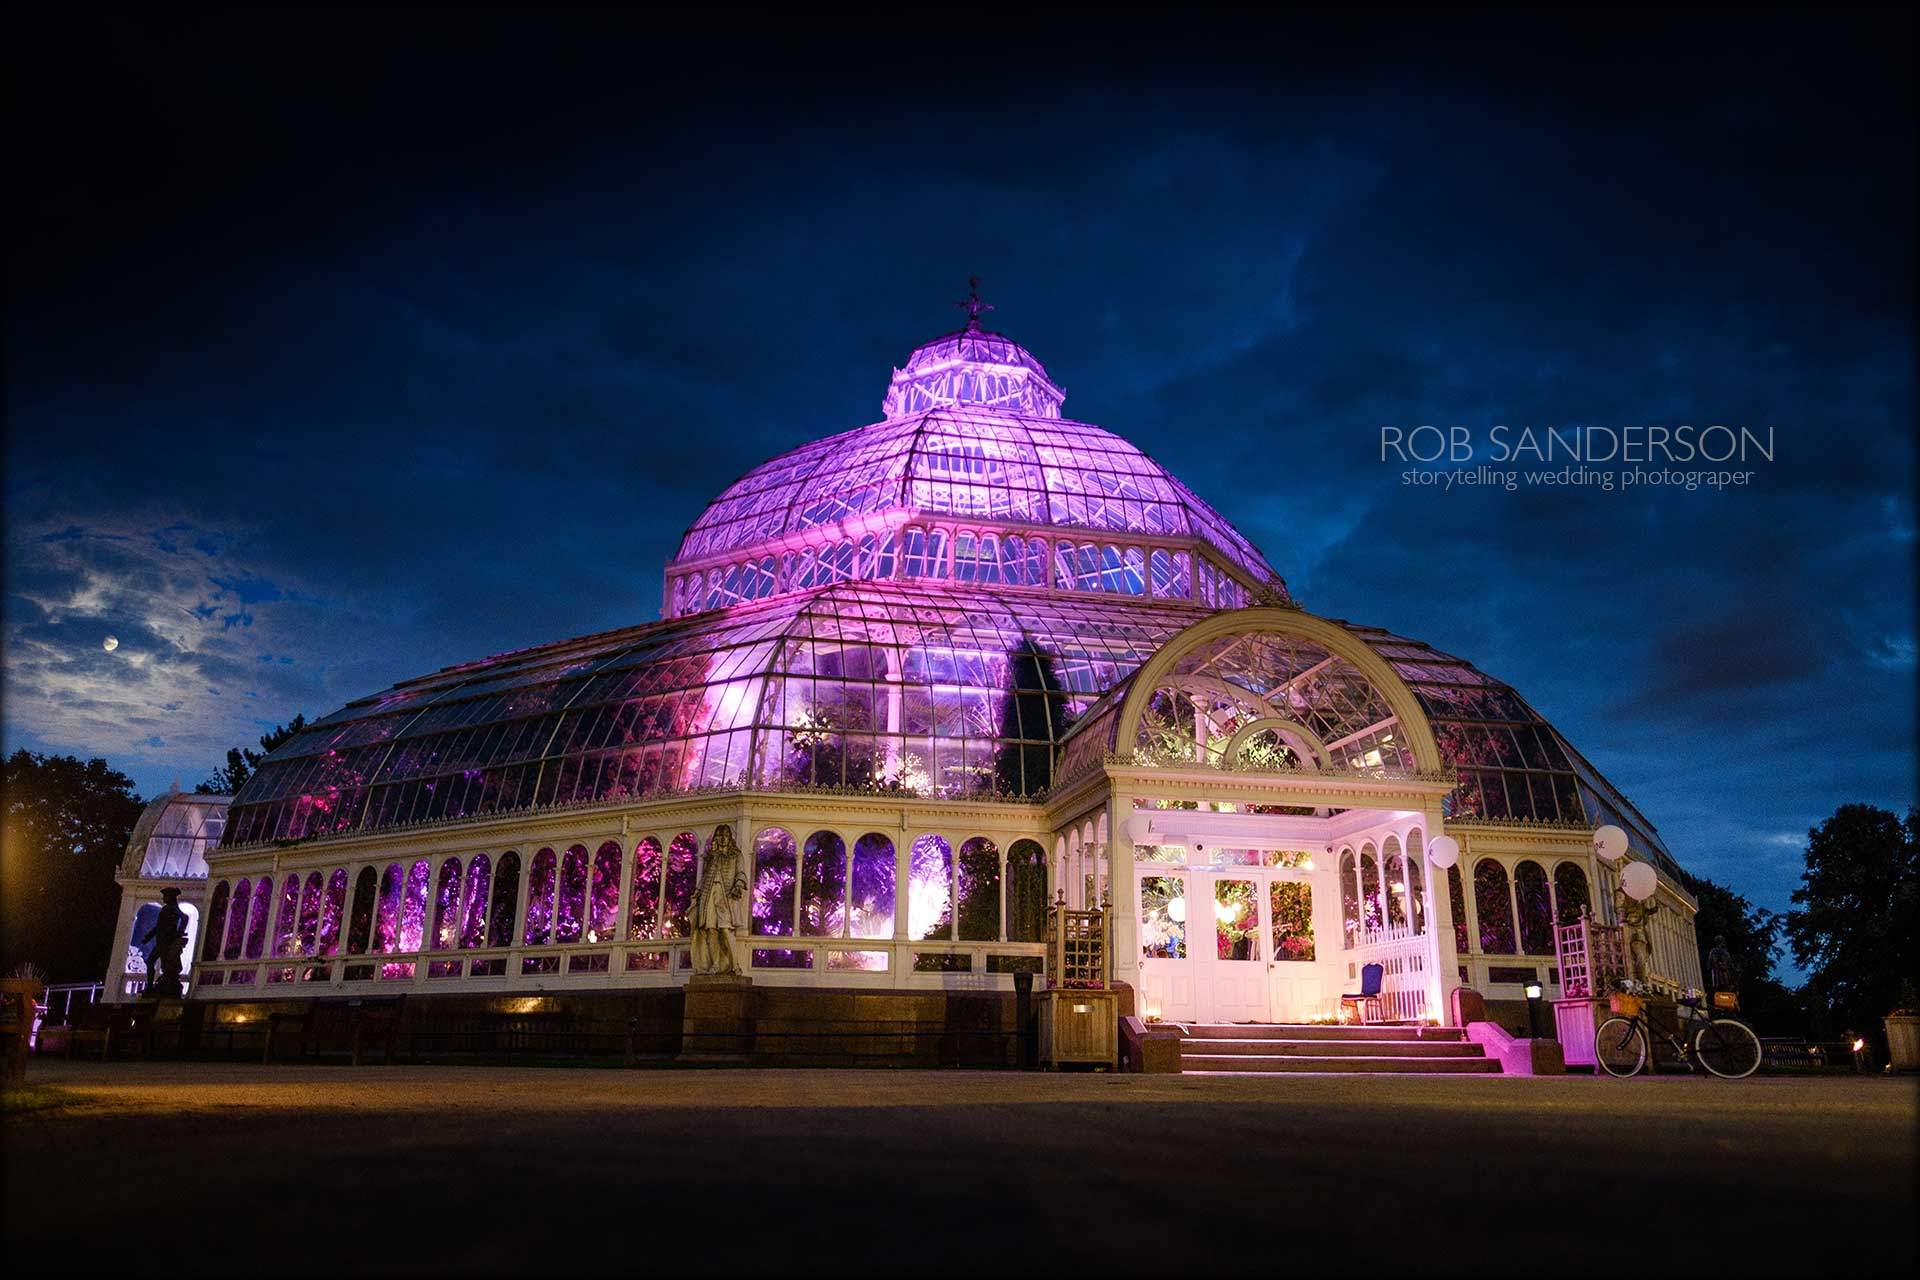 Sefton Park Palm House lit up at night